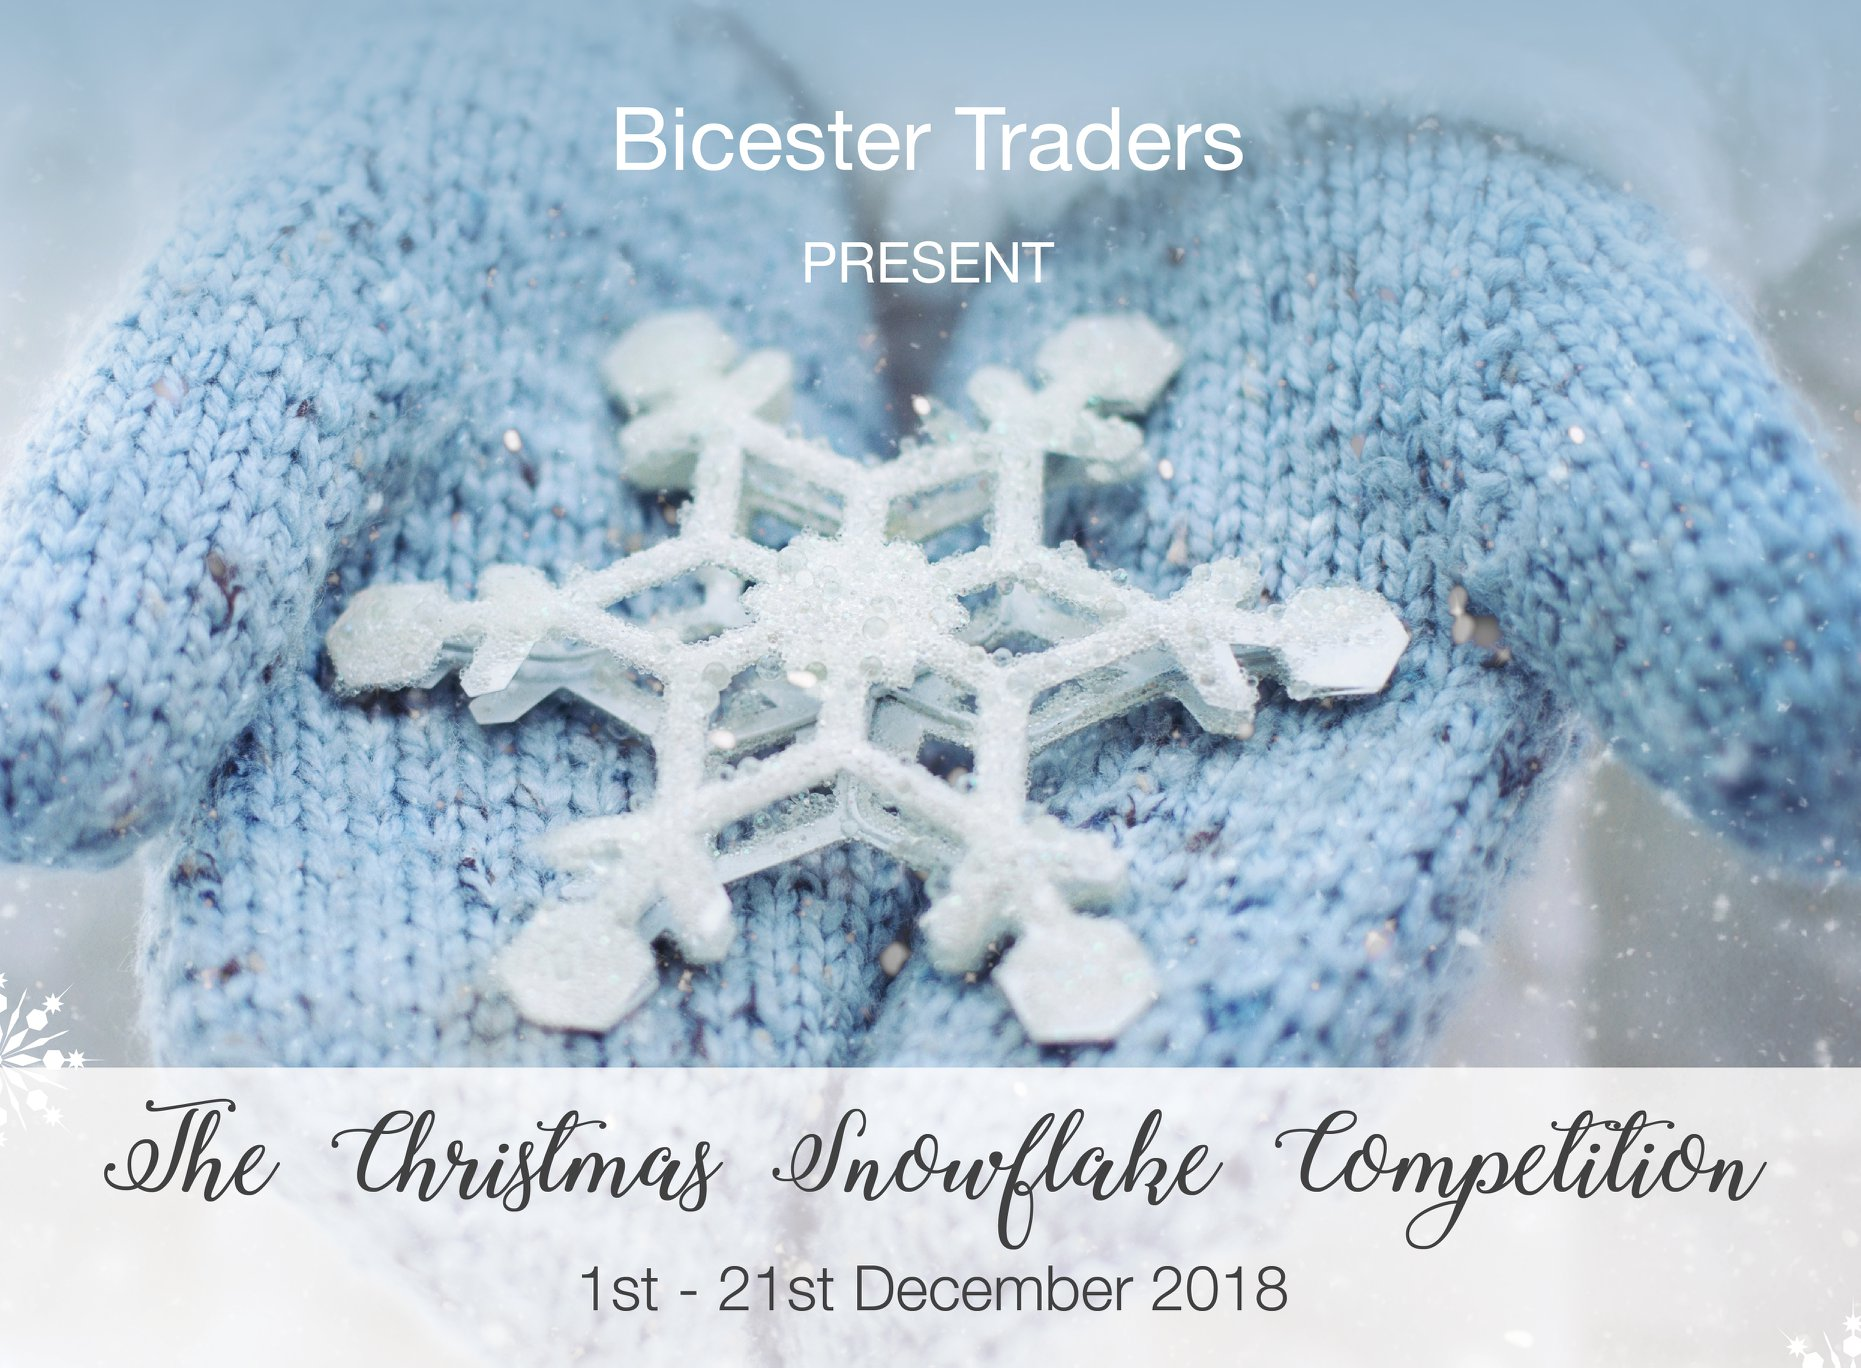 Bicester traders snowflake competition